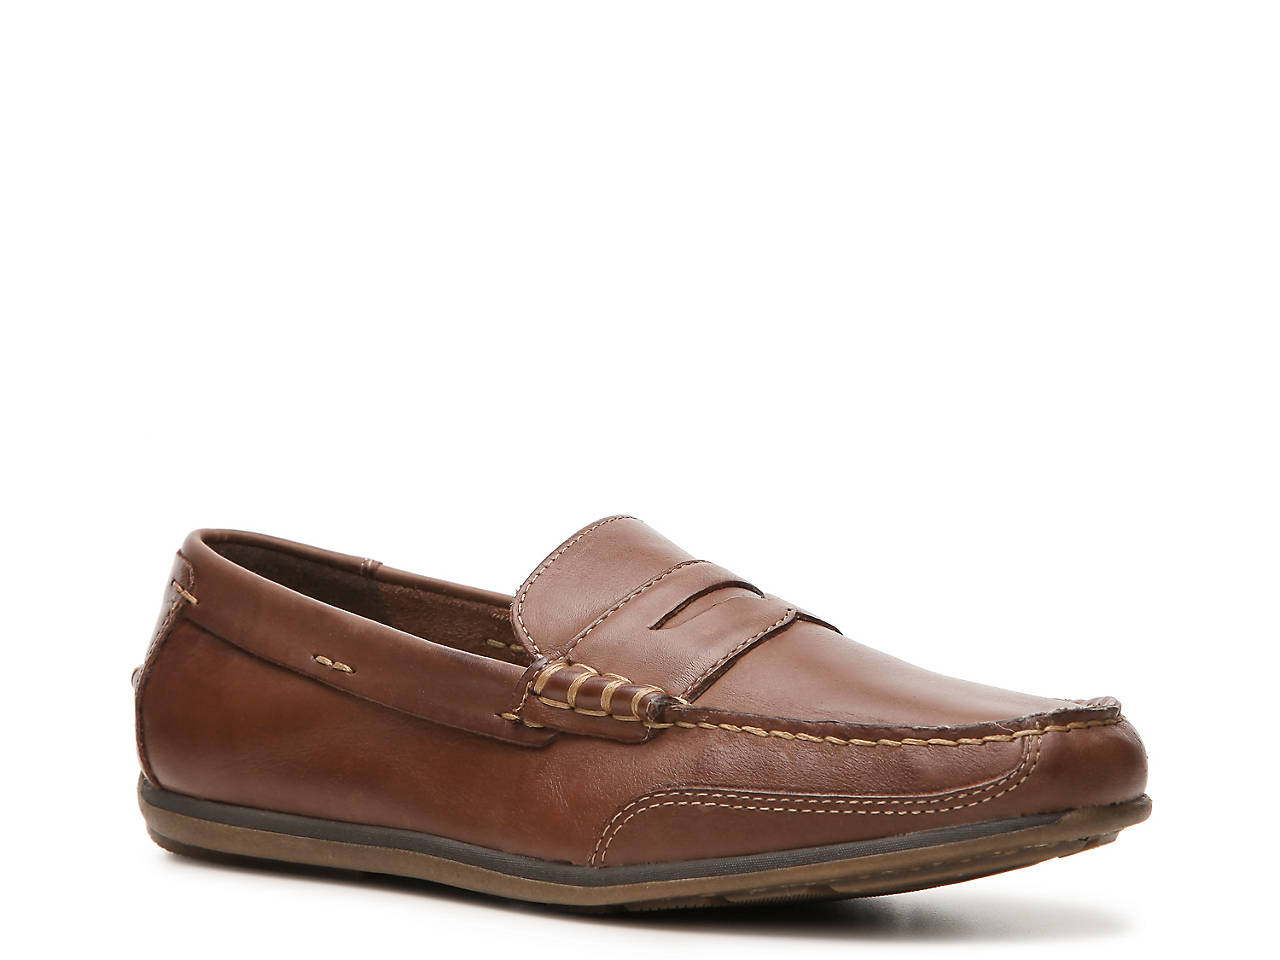 Dockers Tan Dalton Penny Loafer Mens